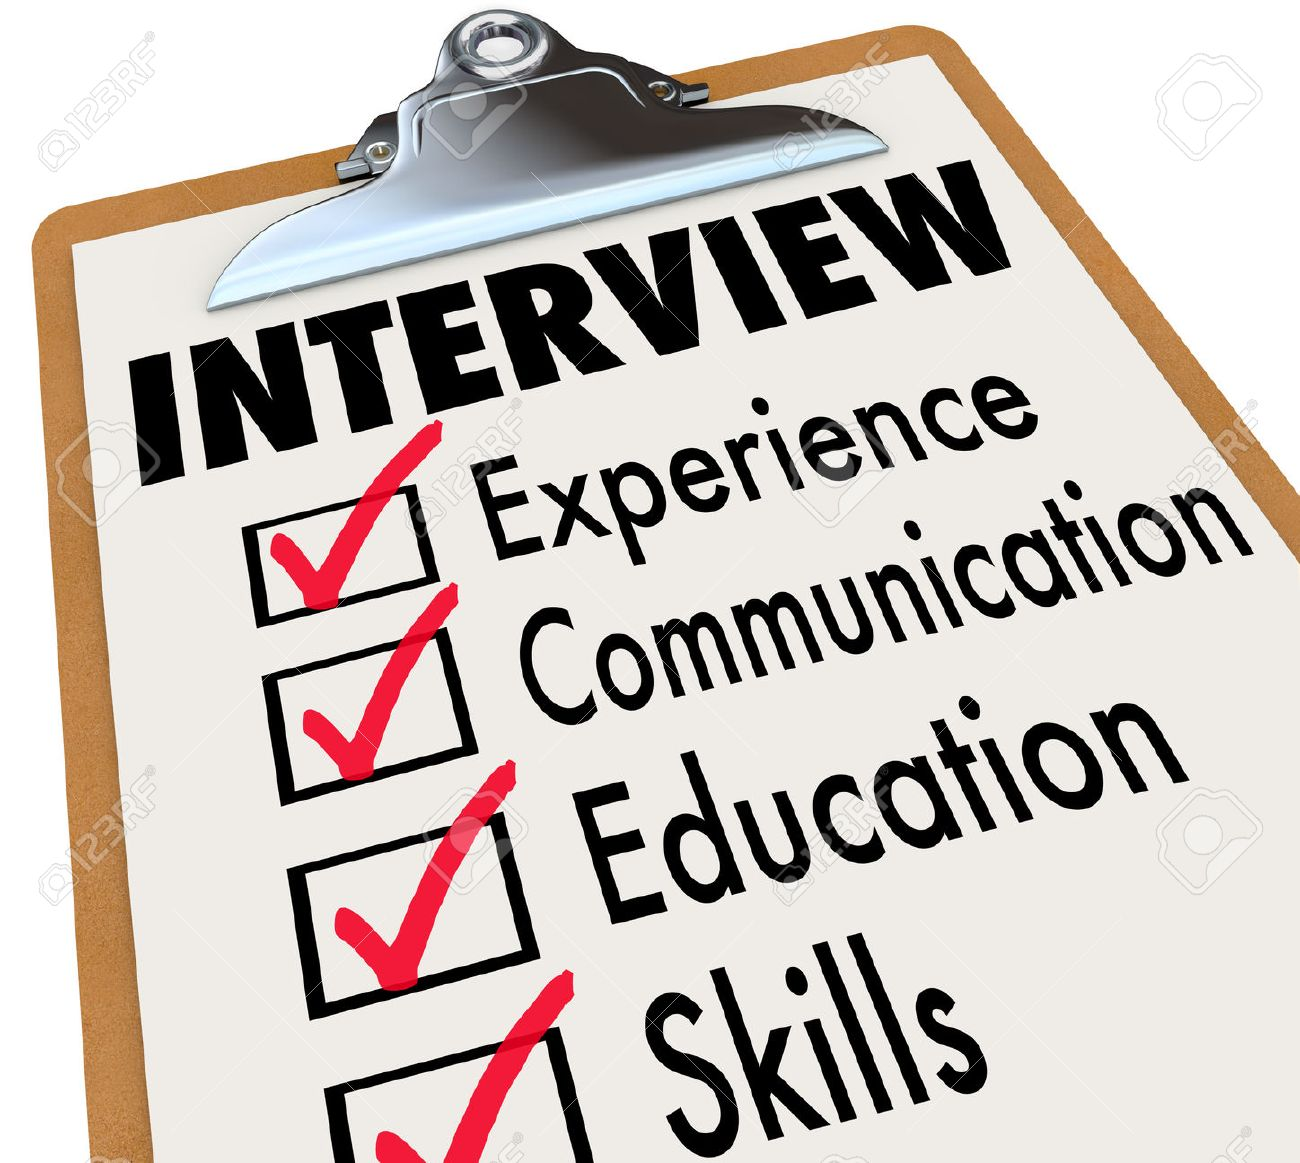 Attractive Interview Qualifications A Job Candidate Must Possess On A Checklist  Clipboard Including Experience, Communication, Regard To Job Qualifications